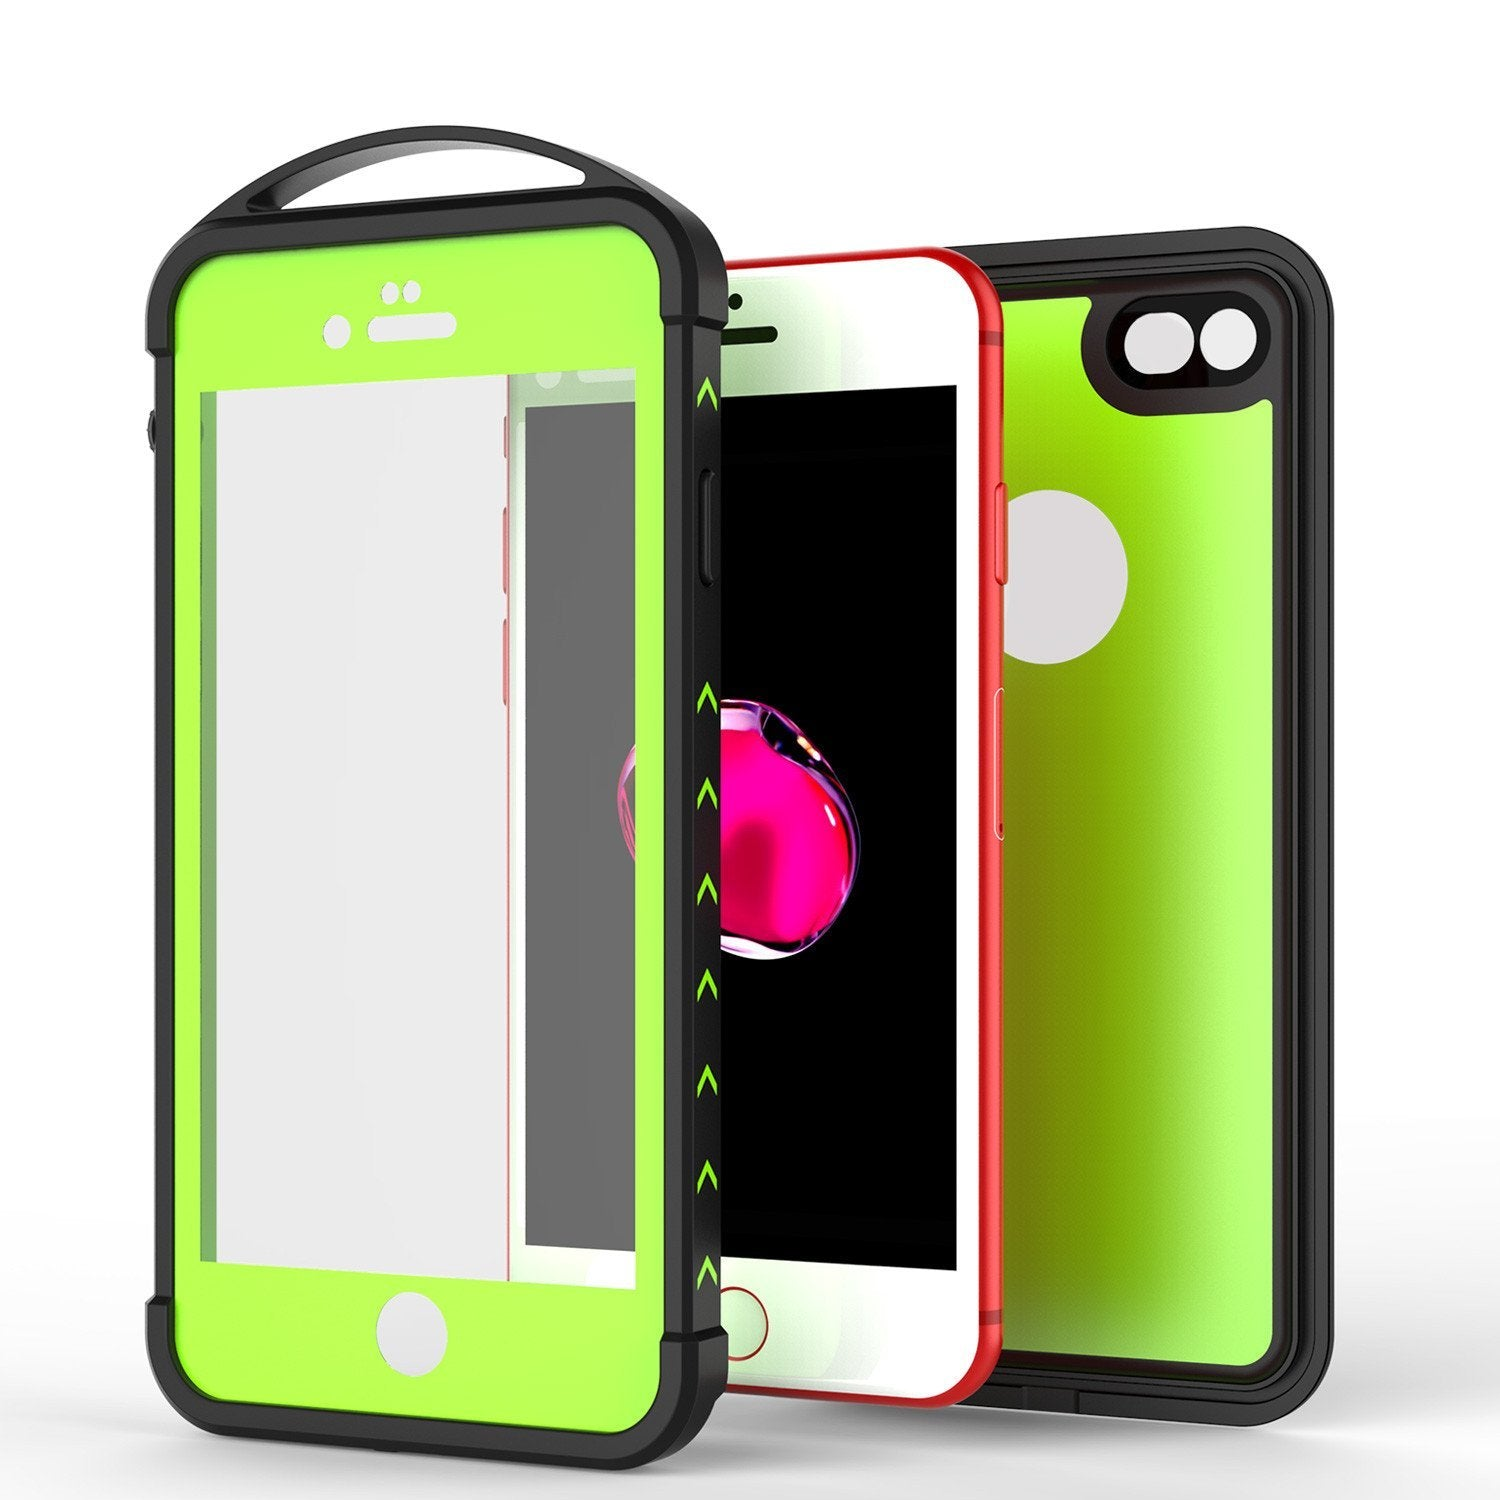 iPhone 8 Waterproof Case, Punkcase ALPINE Series, Light Green | Heavy Duty Armor Cover - PunkCase NZ